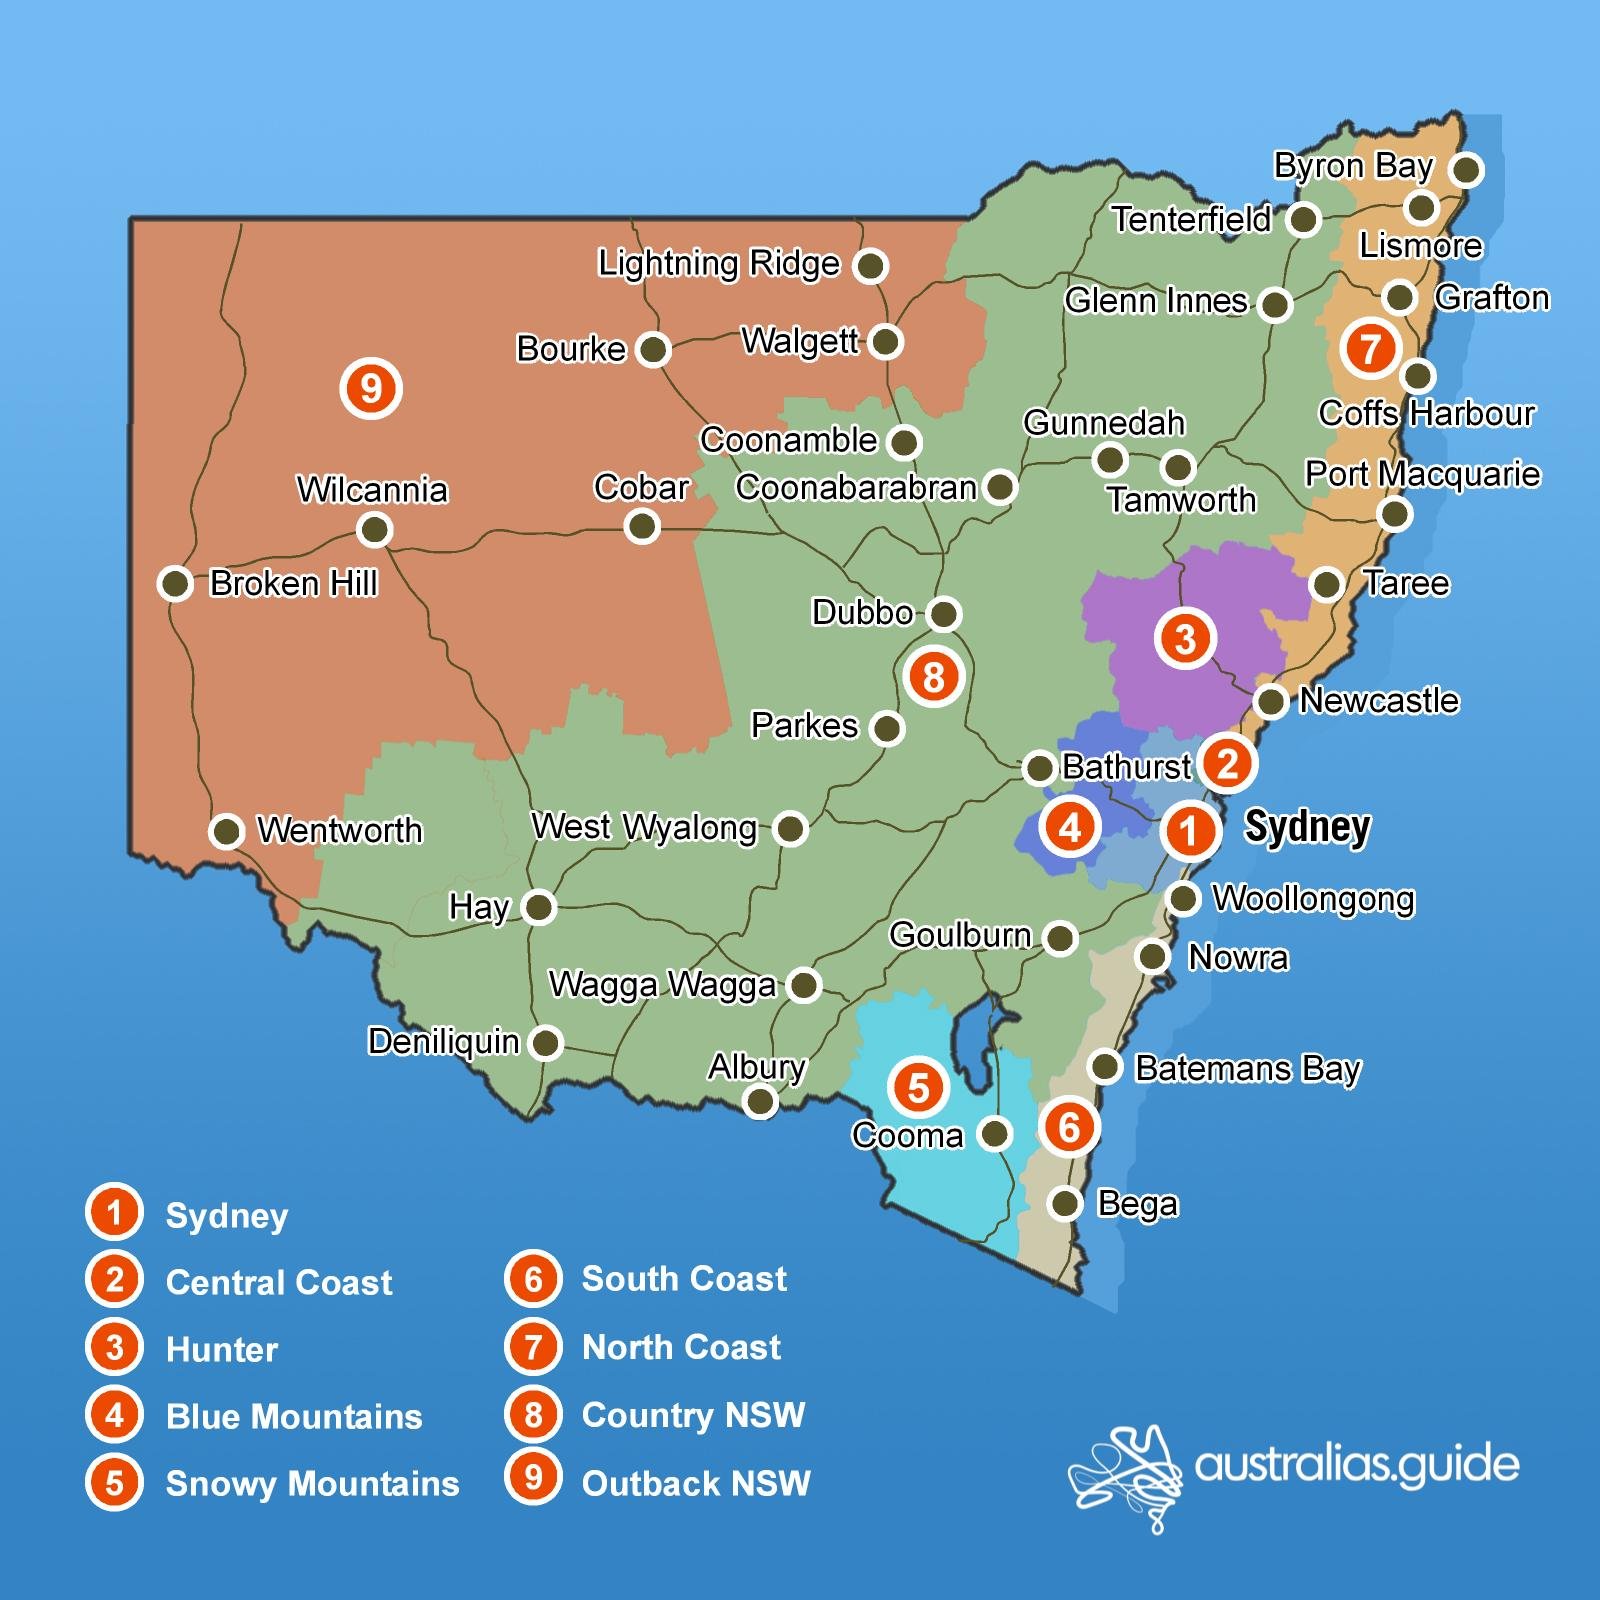 Map Of Nsw Coast Map of New South Wales | New South Wales   Australia's Guide